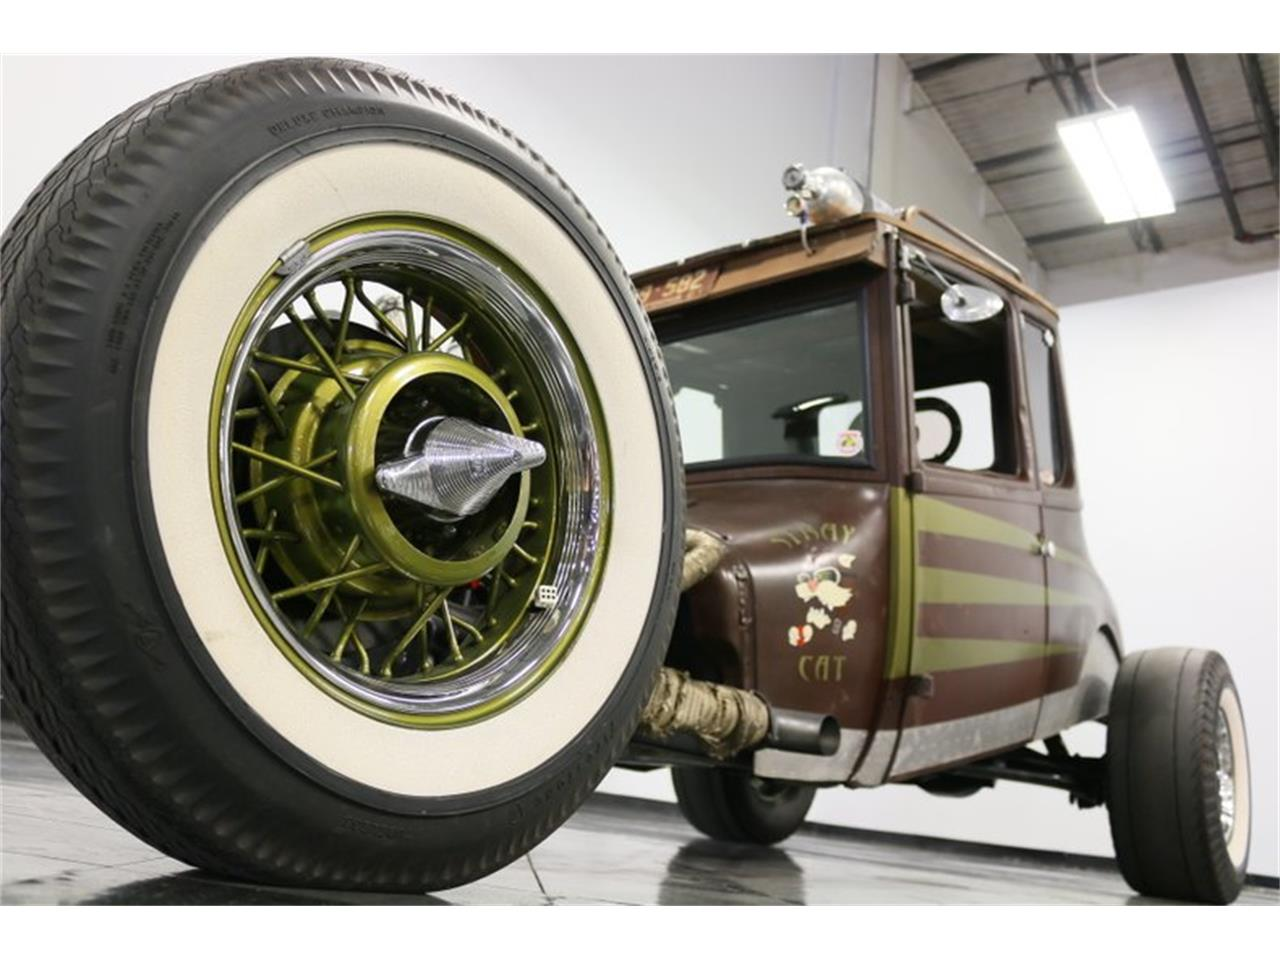 Large Picture of Classic 1927 Ford Coupe - $31,995.00 Offered by Streetside Classics - Dallas / Fort Worth - Q4LA